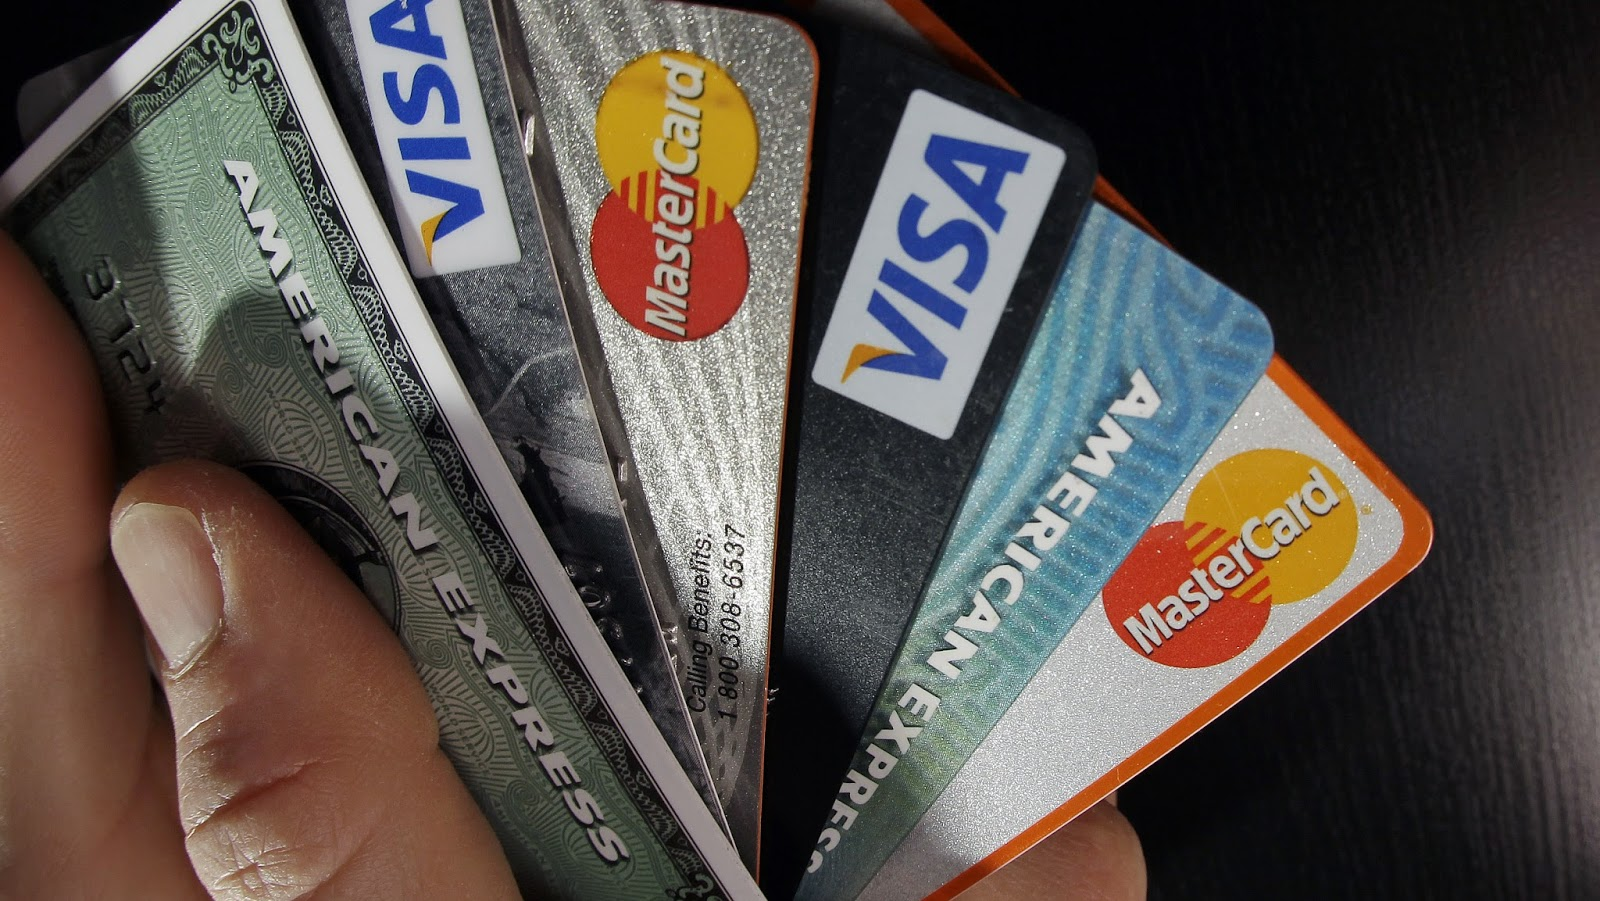 Financial Fraud: Roman Valeryevich Seleznev Convicted to Steal Credit Card Numbers And Sell Them on Dark Market Websites